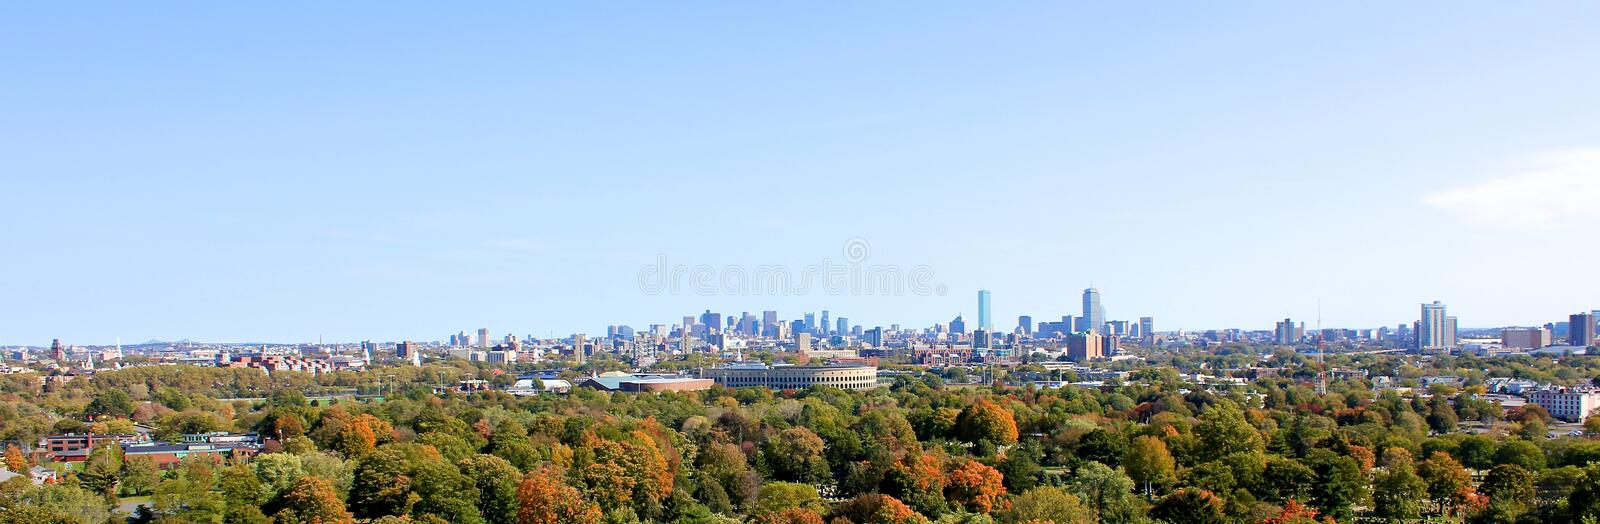 Download Panorama Of Cambridge With Boston In The Distance Stock Image - Image: 23528921